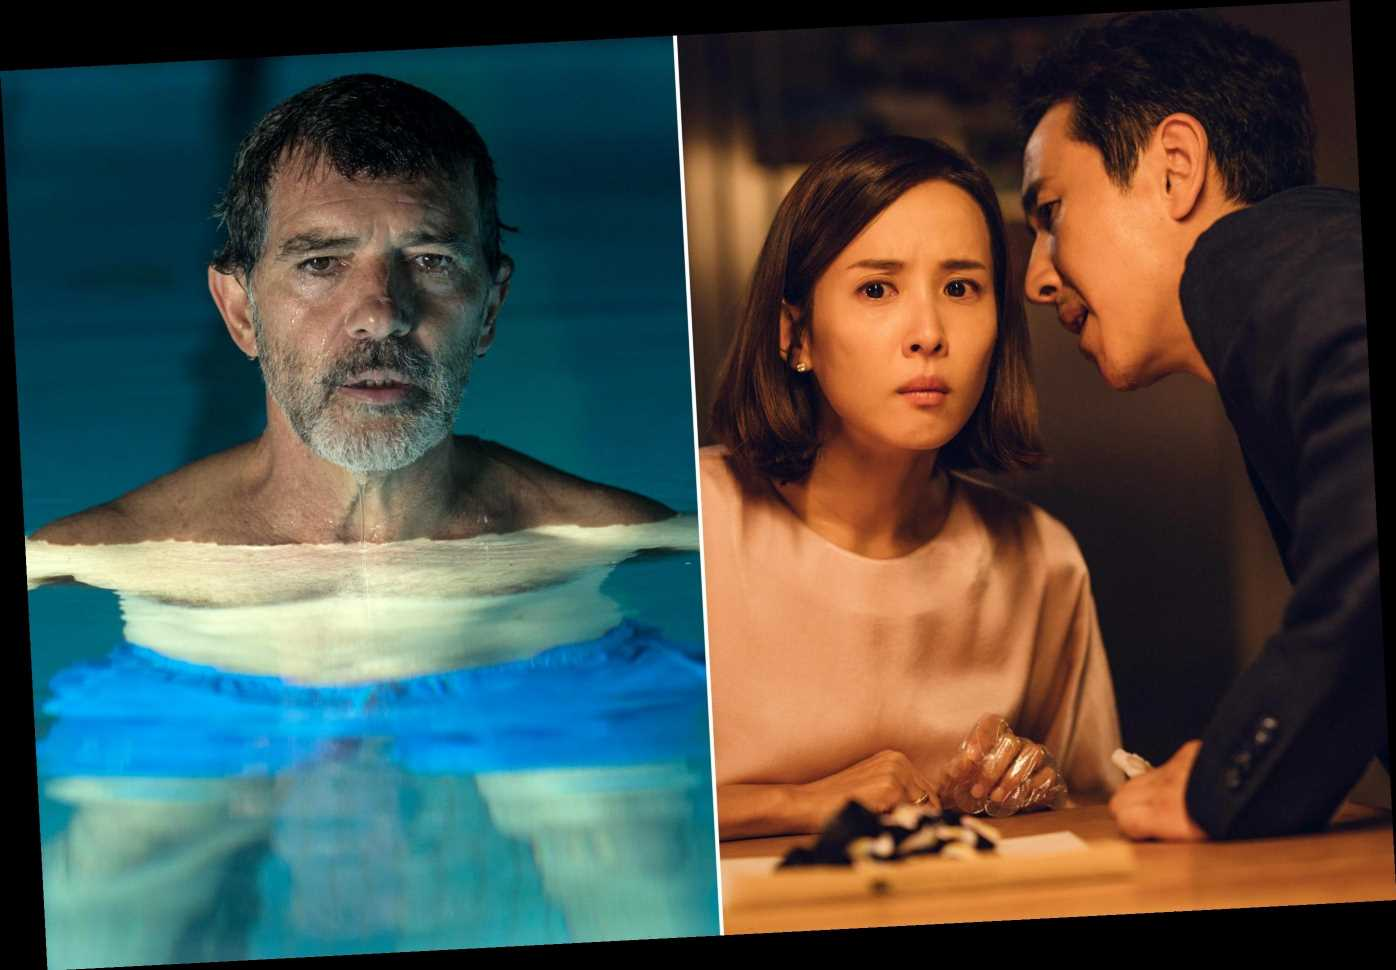 Oscars 2020: Each country's Best International Feature submission